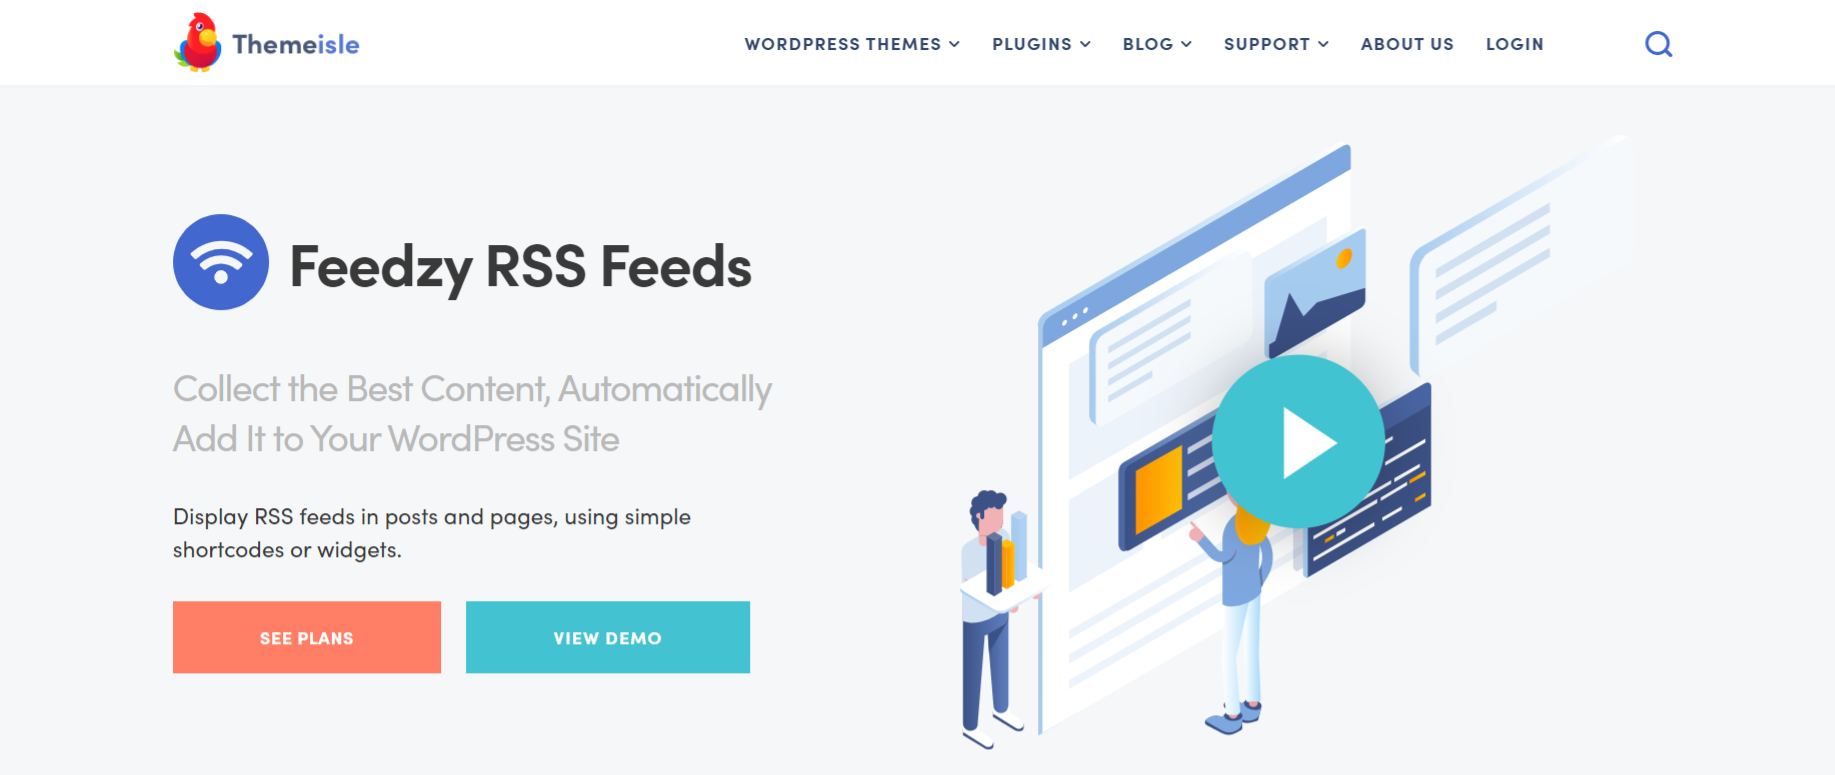 Feedzy rss feeds lite: Autoblogging plugin and tool